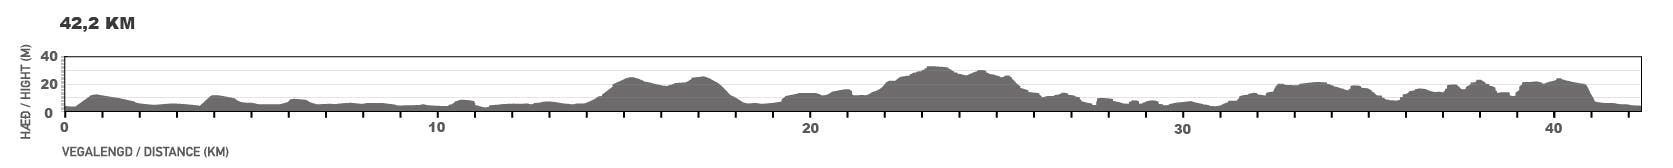 Elevation map of the marathon course.